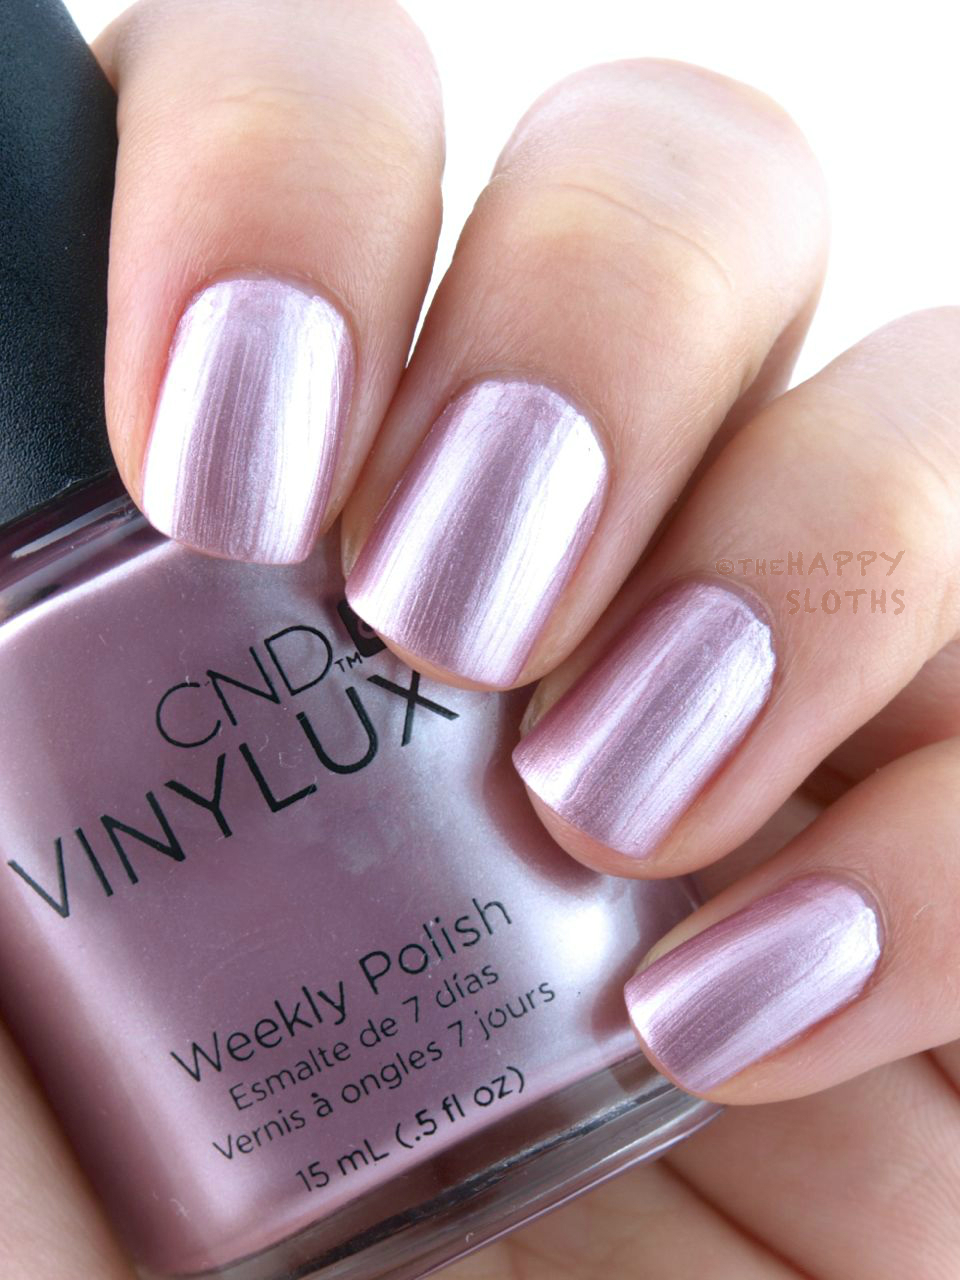 Cnd Vinylux Holiday 2015 Aurora Collection Review And Swatches The Happy Sloths Beauty